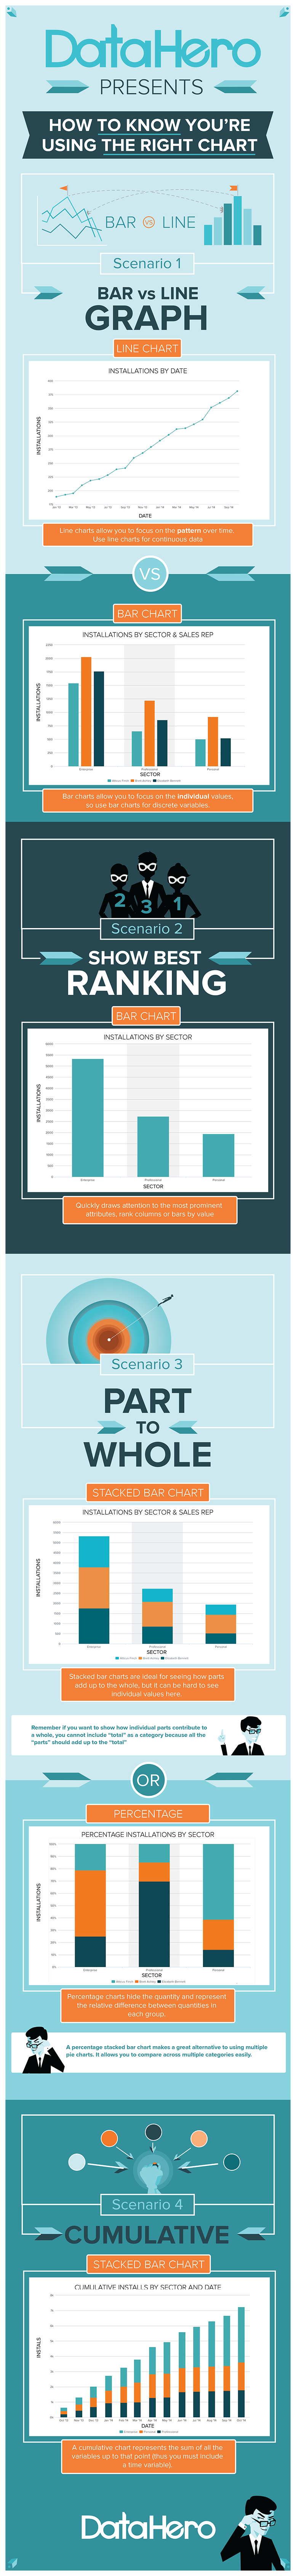 Infographic: How To Know You're Using the Right Chart